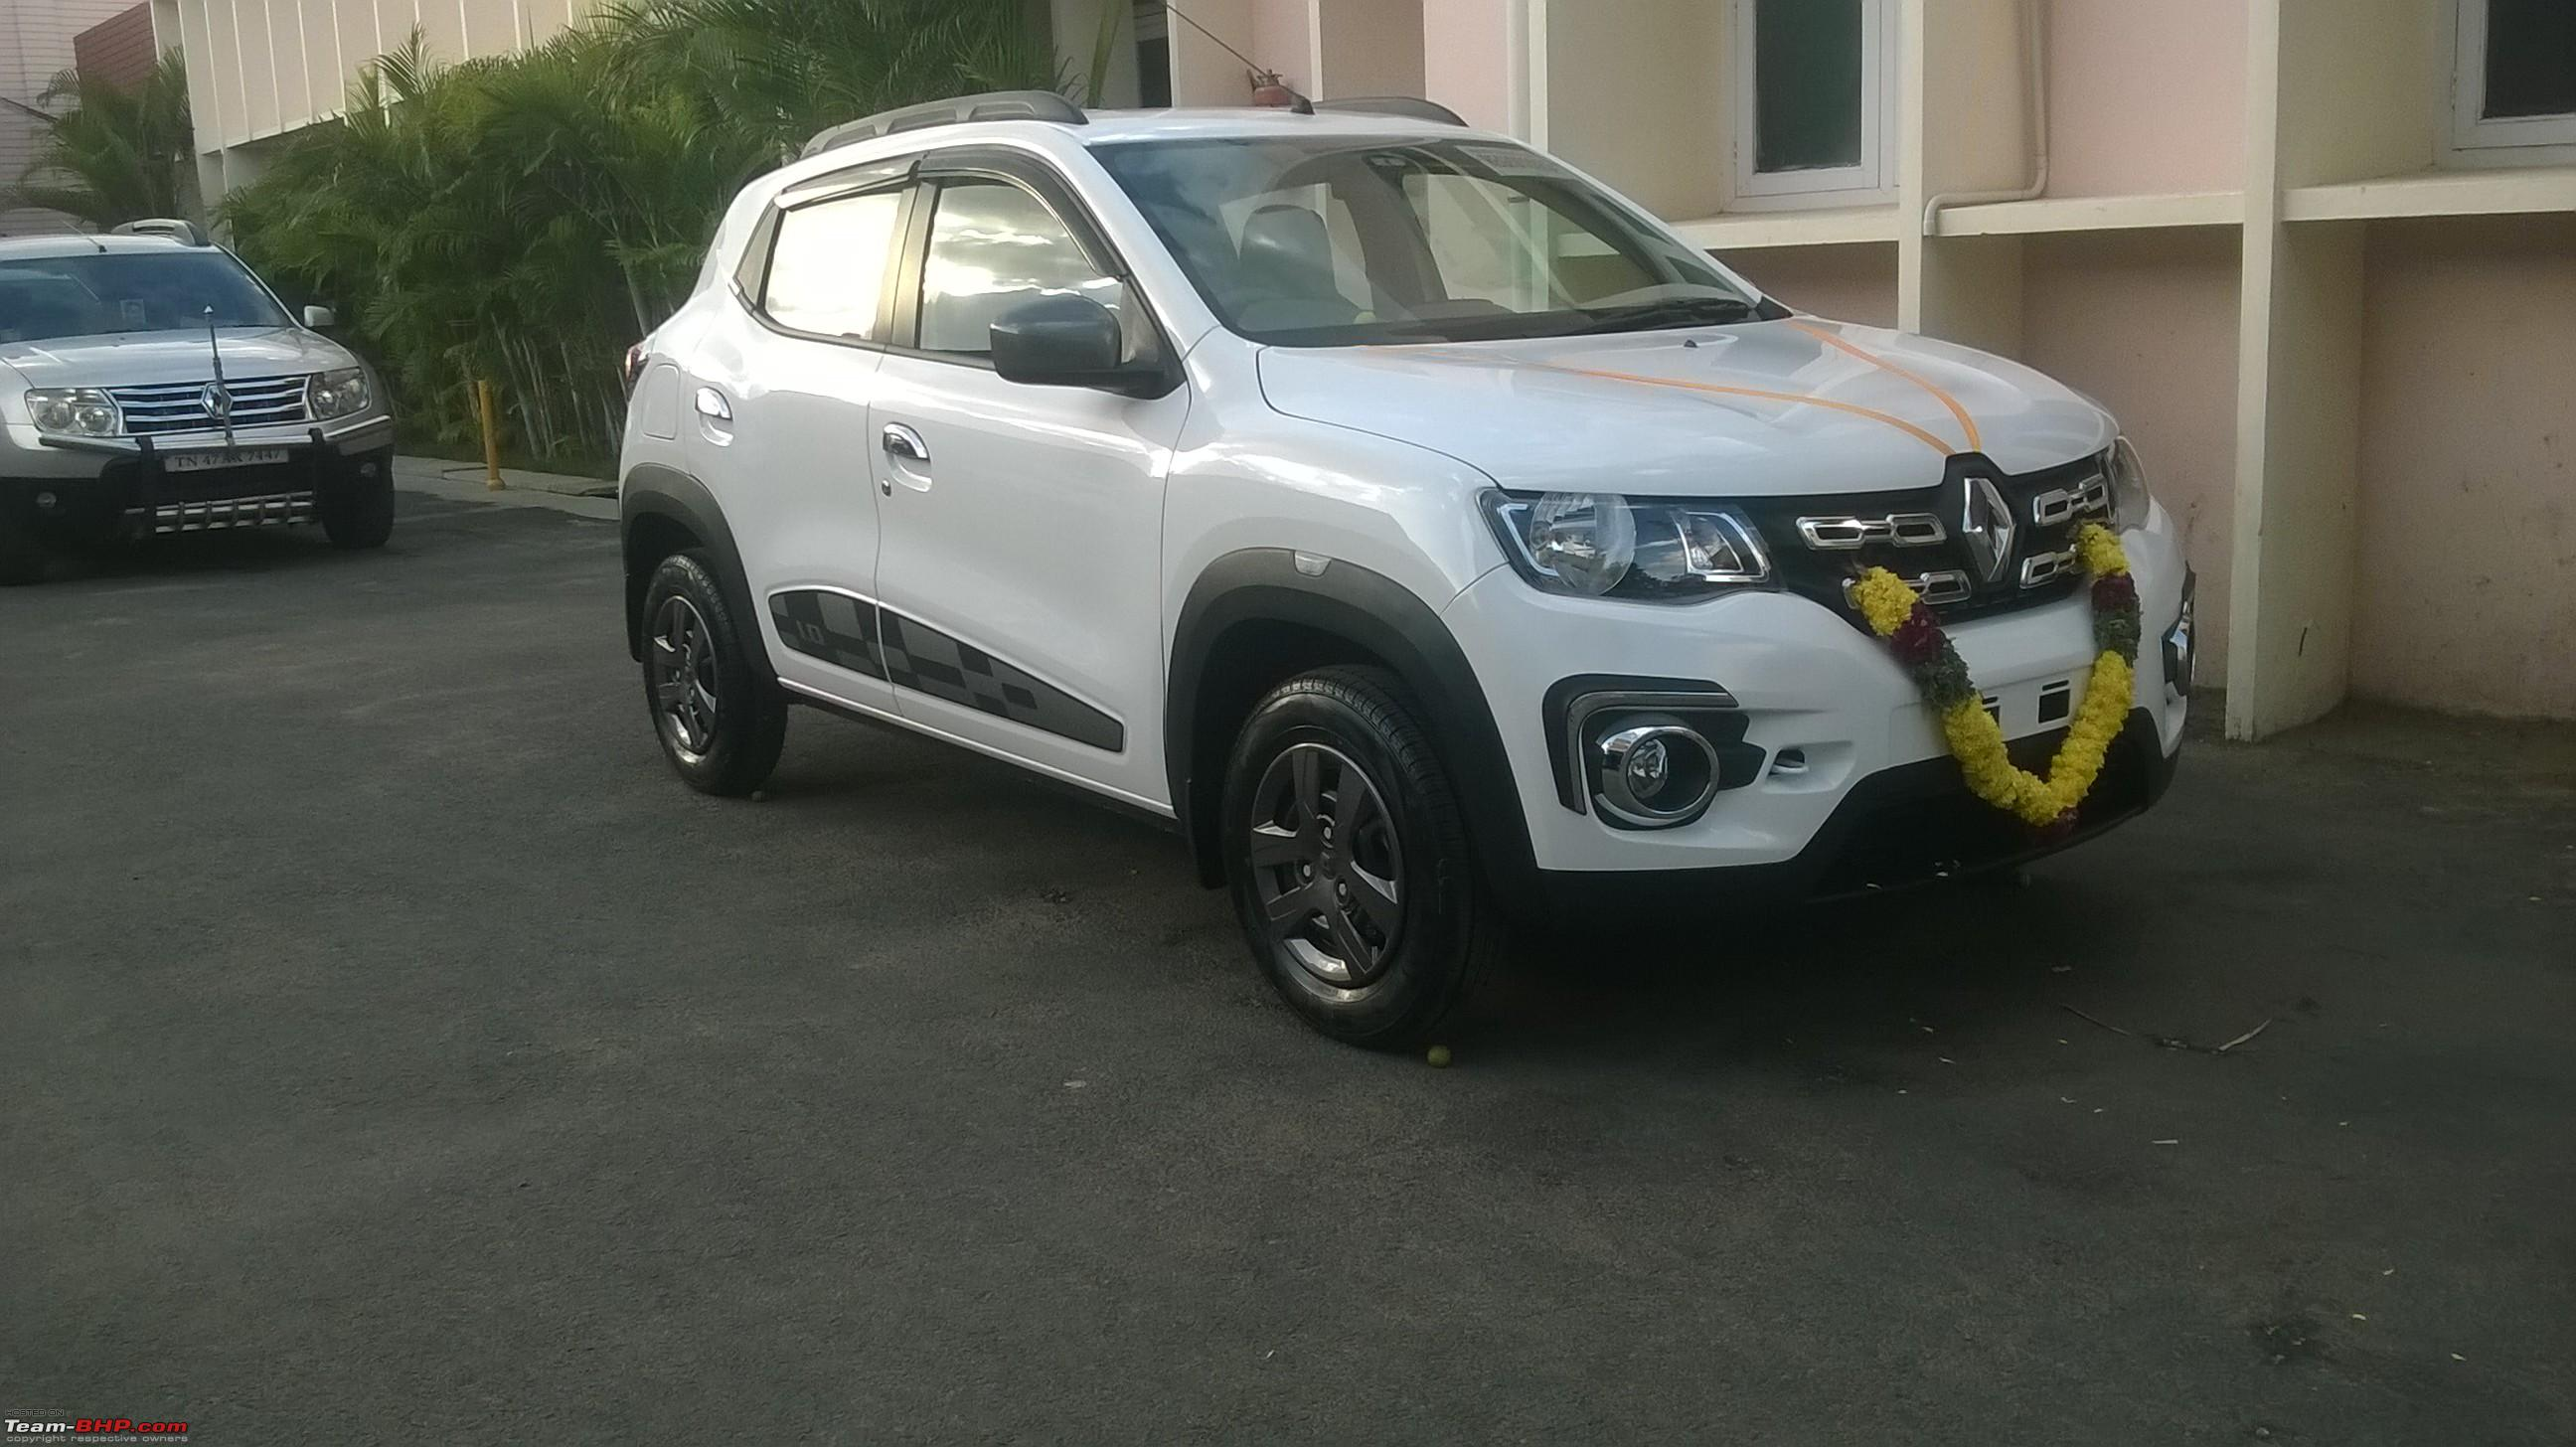 2015 Renault Duster Review Team Bhp - New Car Reviews and ...